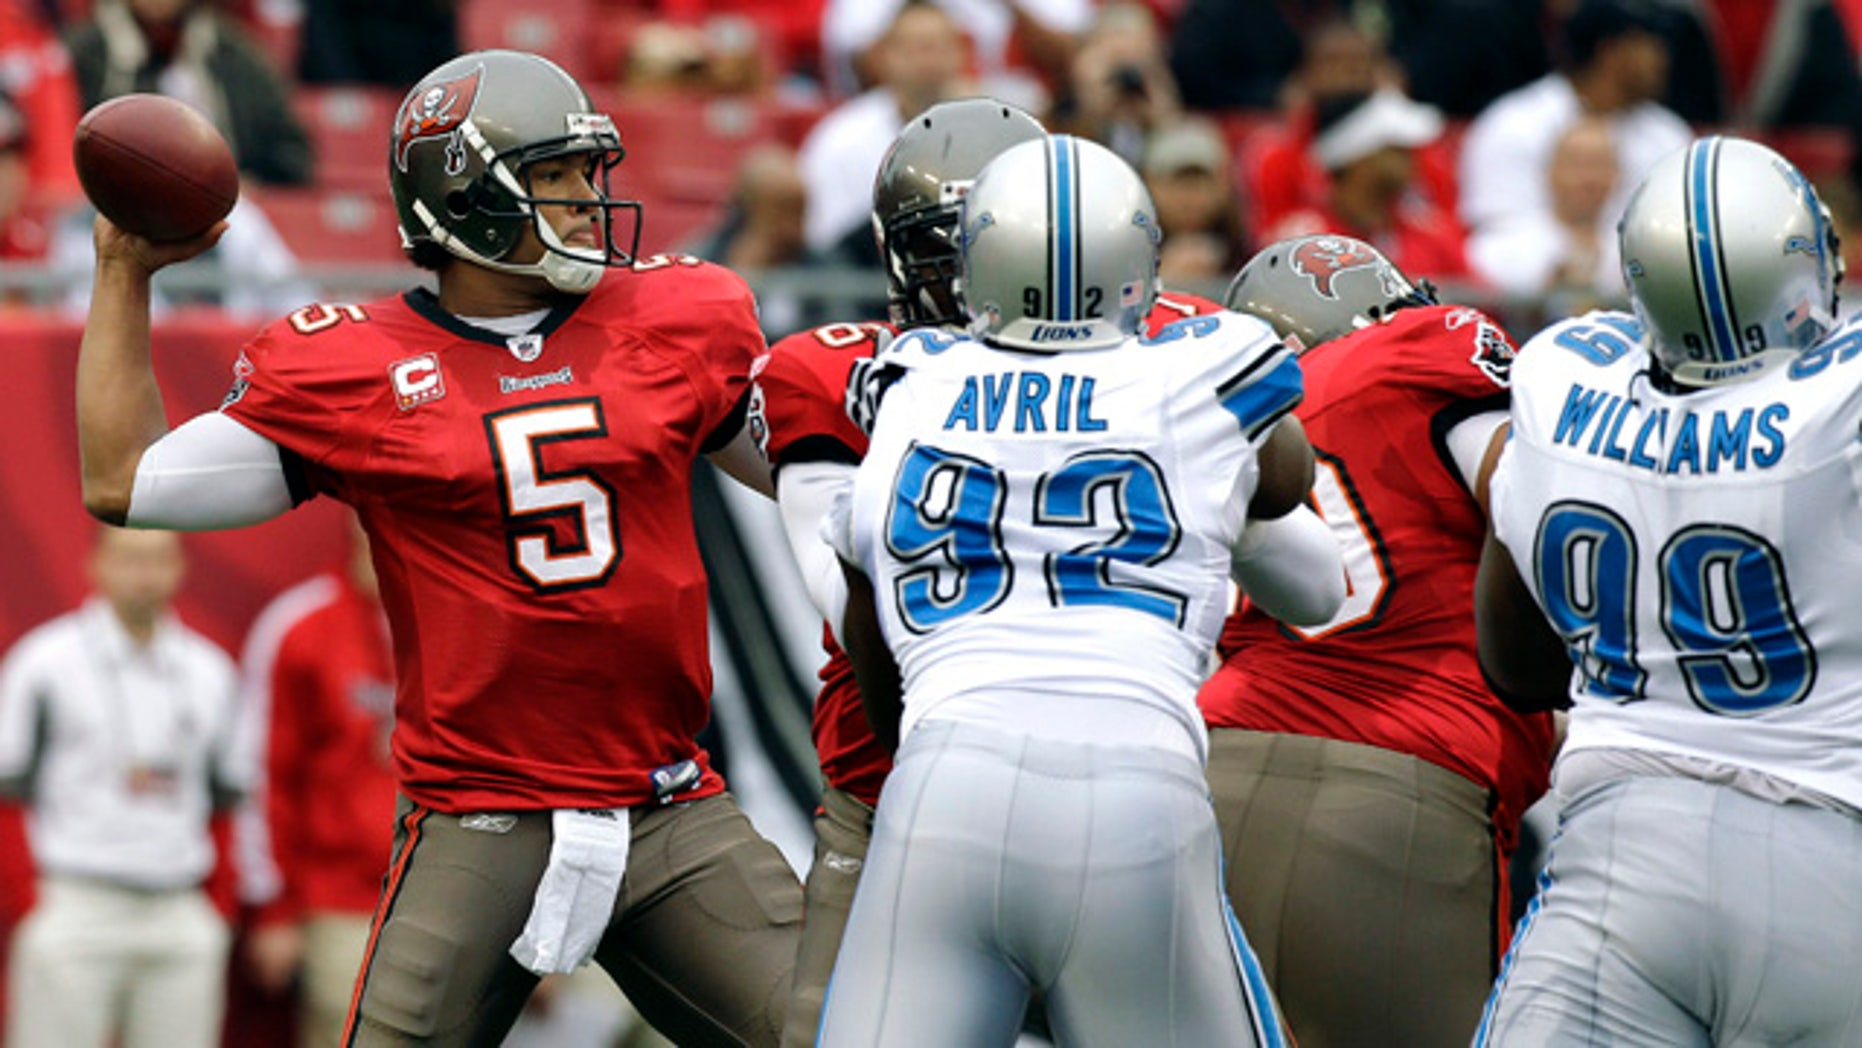 Dec. 19: Tampa Bay Buccaneers quarterback Josh Freeman (5) throws as Detroit Lions defensive end Cliff Avril (92) and defensive tackle Corey Williams (99) pursue during the first quarter of an NFL football game in Tampa, Fla. (AP)